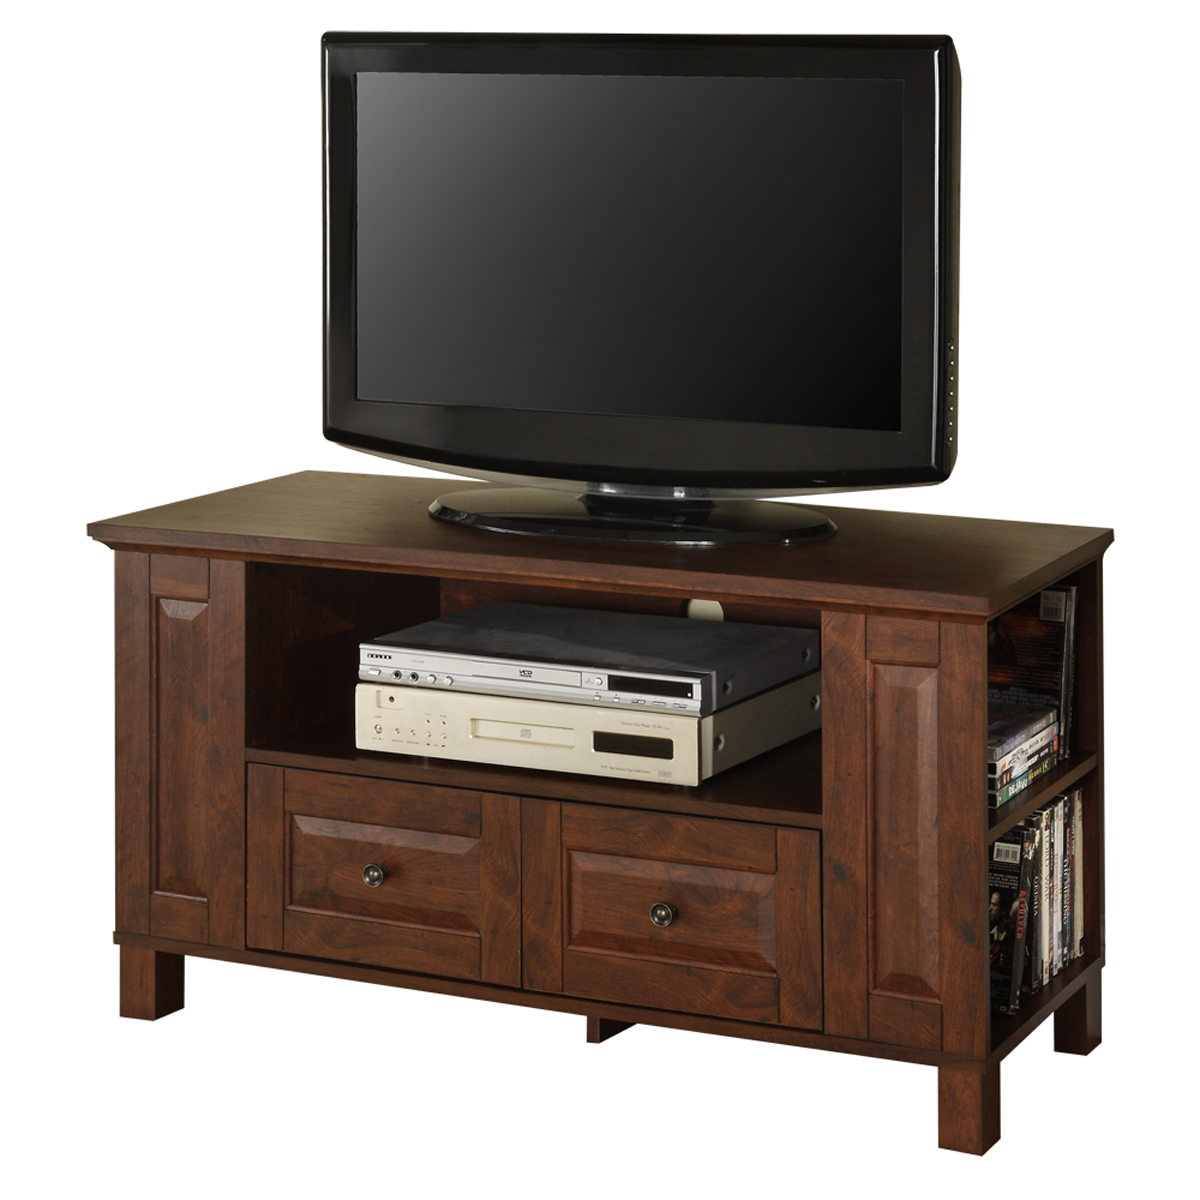 Tv Stand Drawers ~ Inch wood tv stand with drawers and storage by walker